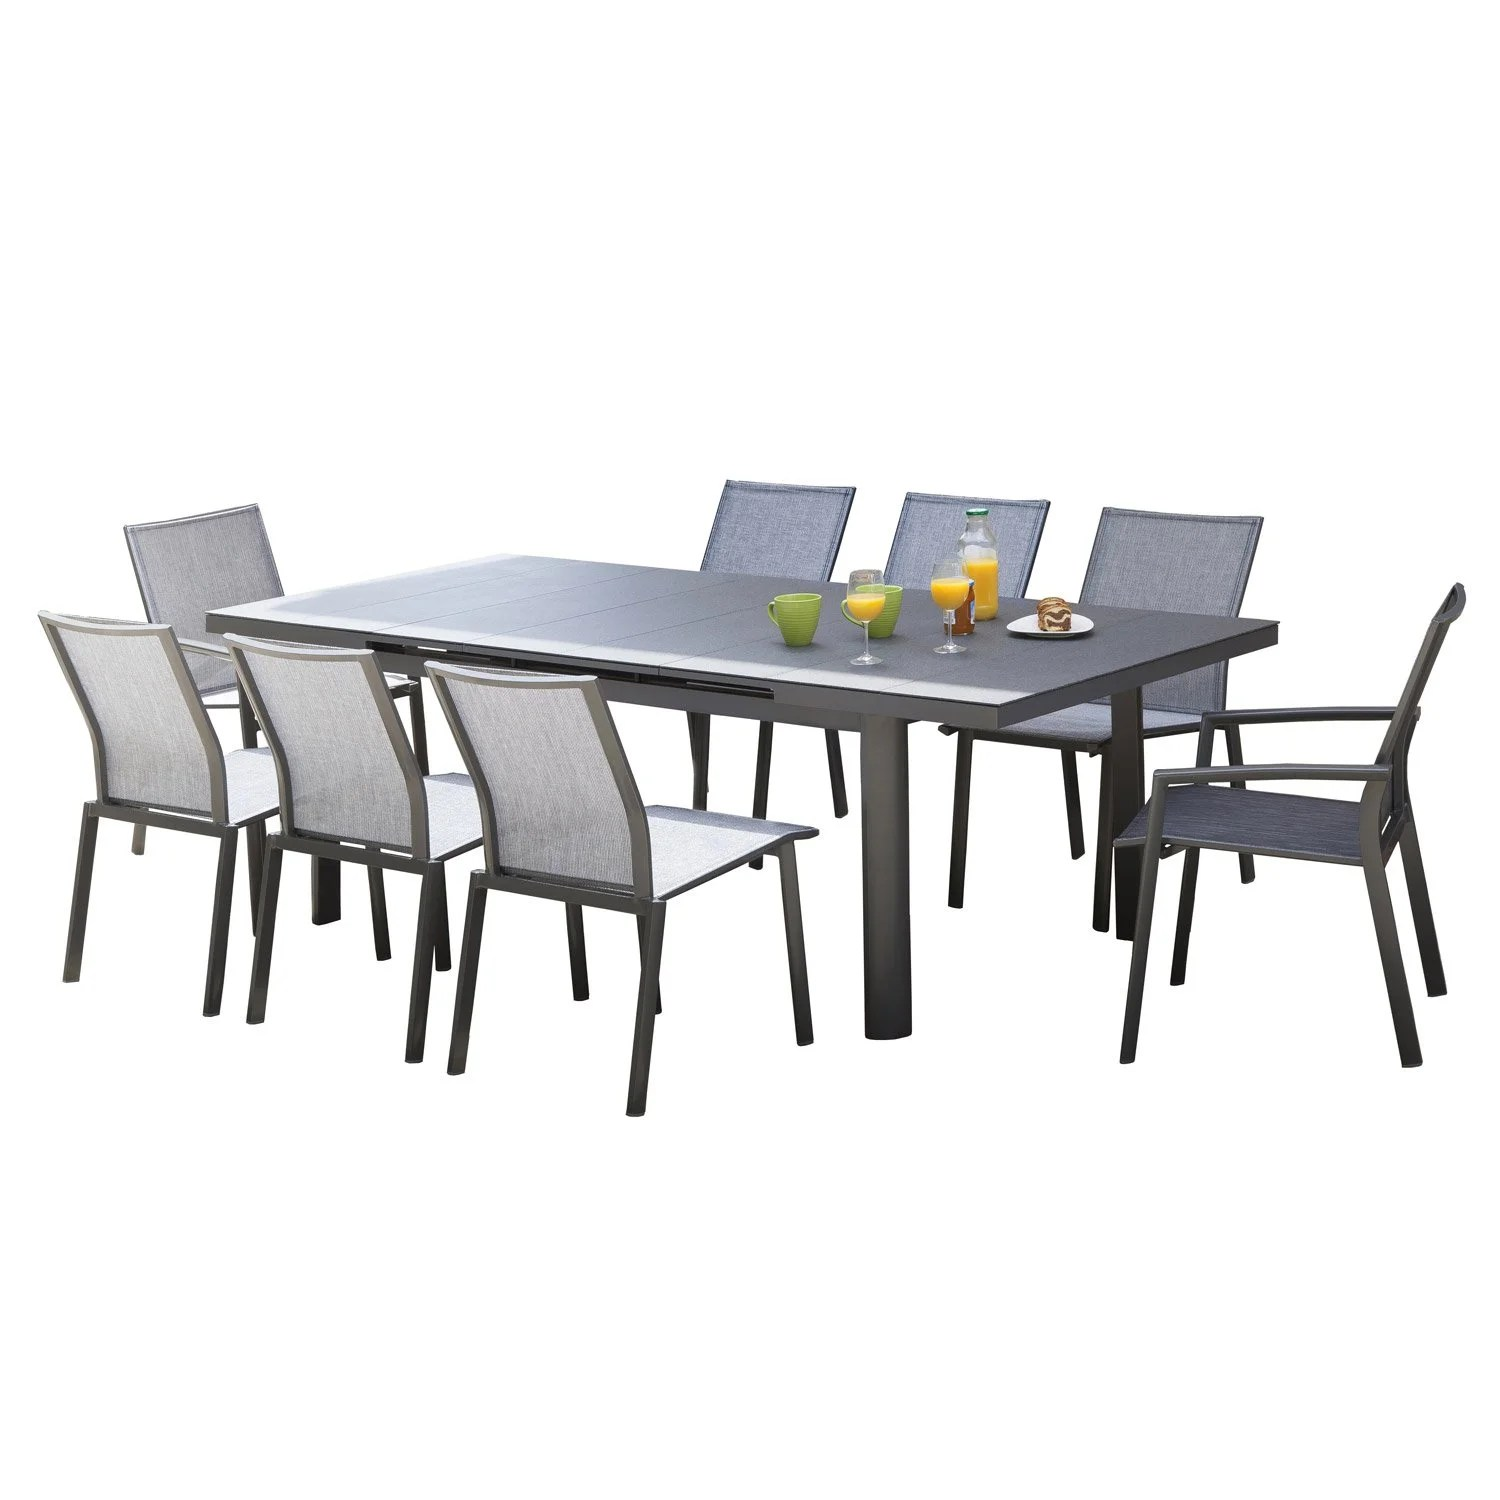 Table De Jardin Table De Jardin Bora Rectangulaire Gris 8 Personnes